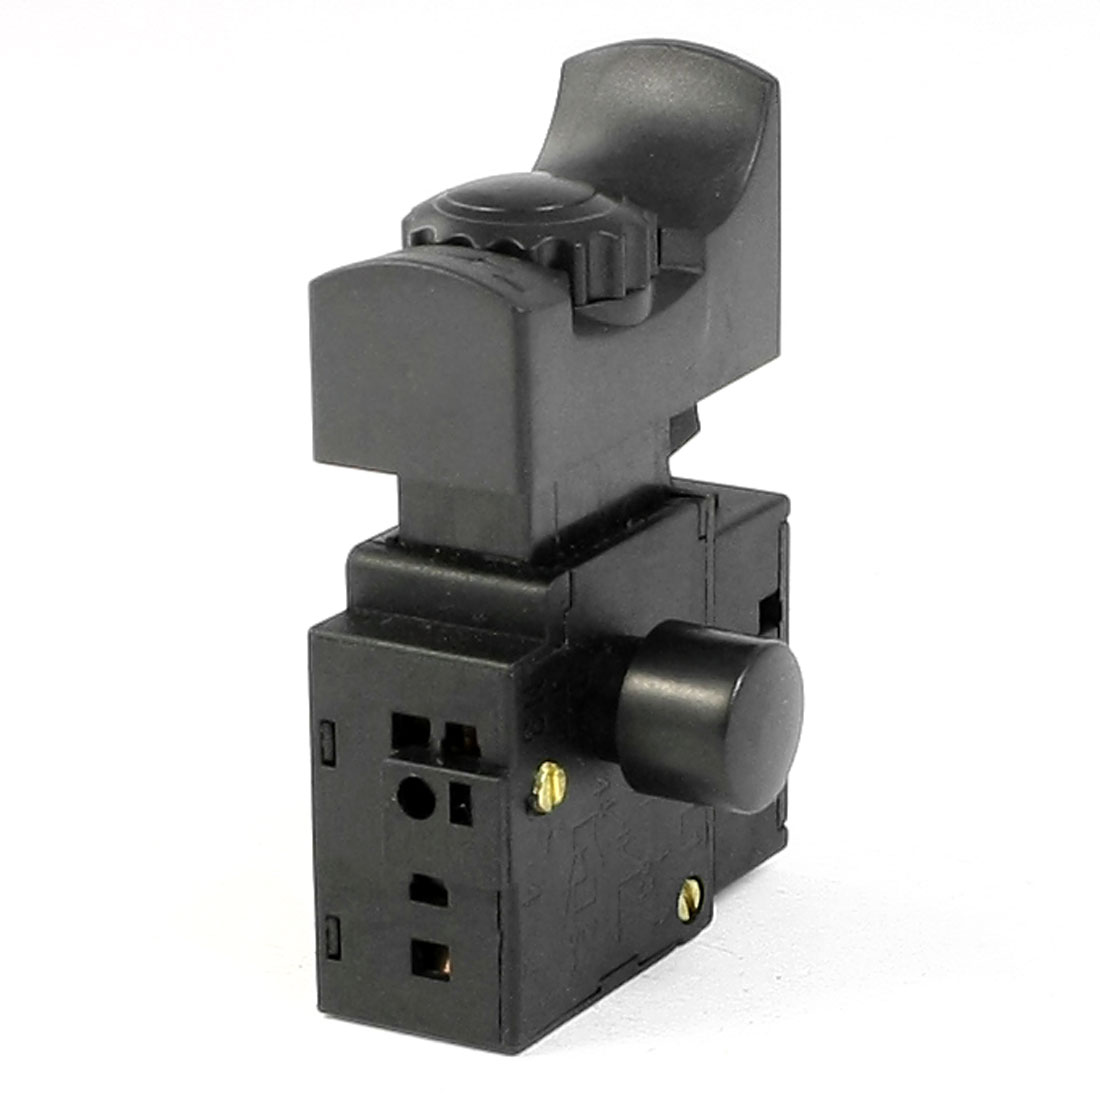 AC 250V 6A Speed Control Optional Lock on Electric Trigger Switch